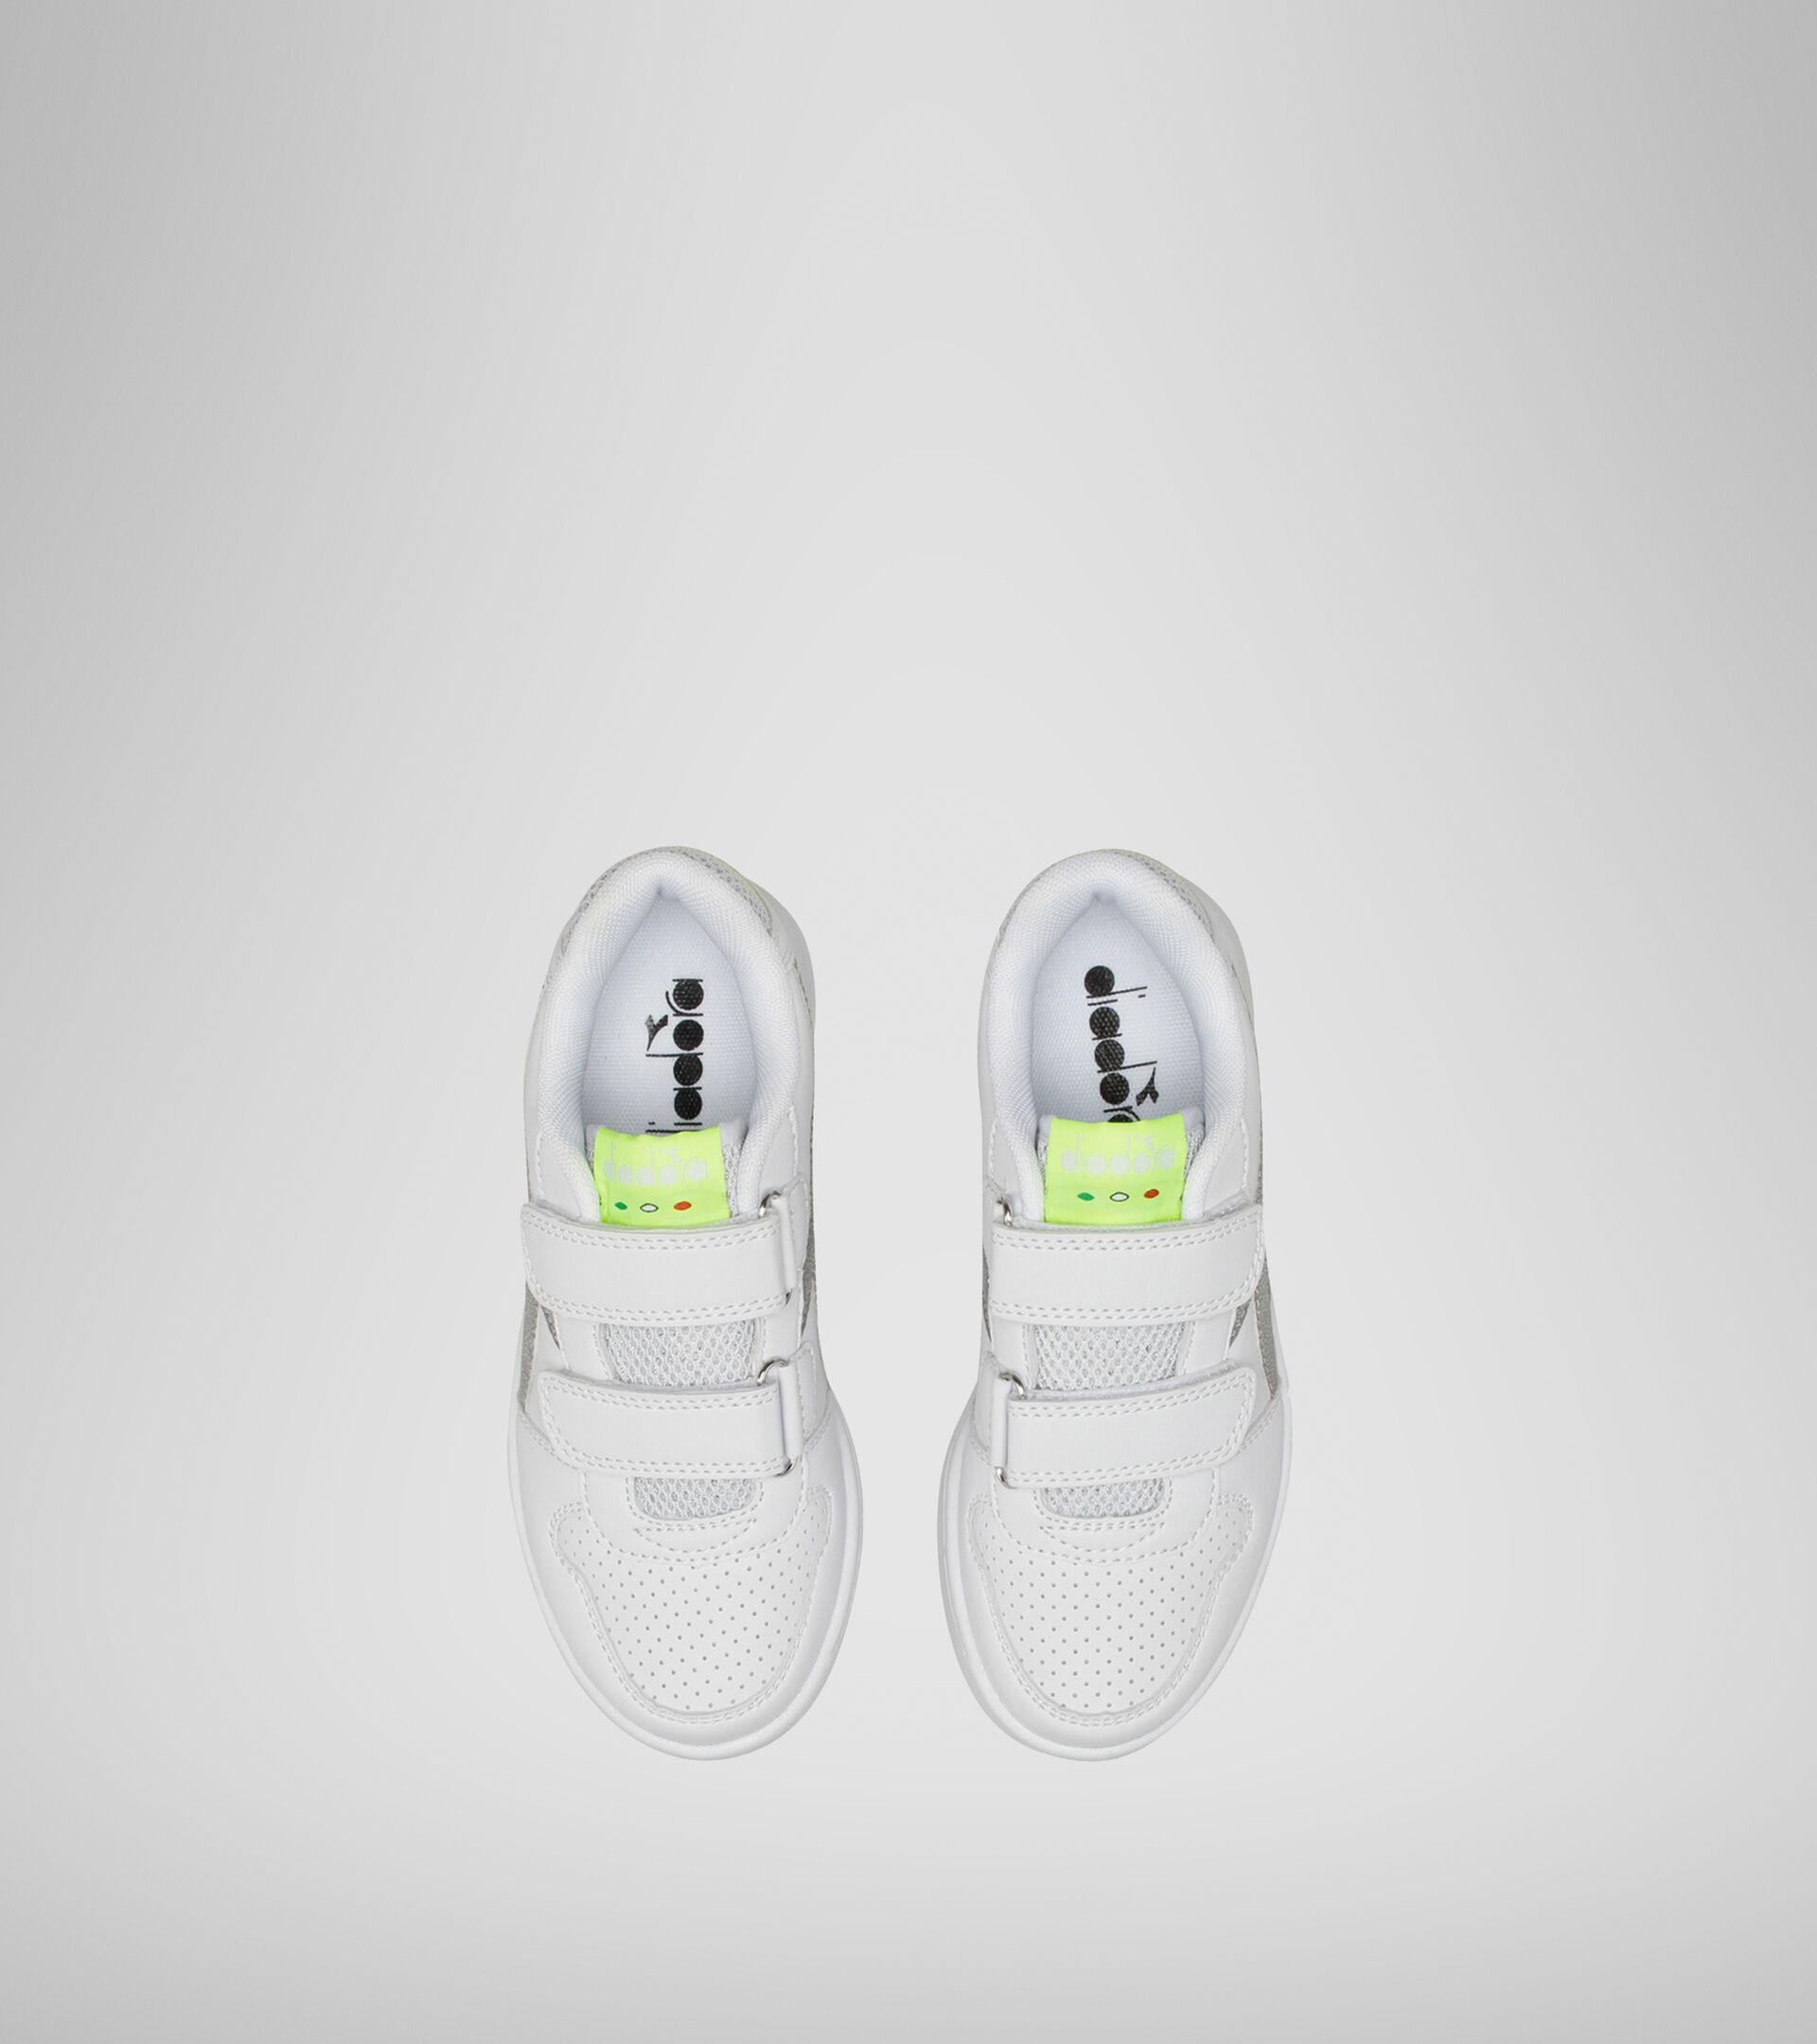 Sports shoes - Kids 4-8 years PLAYGROUND PS GIRL WHITE/YELLOW FLUO. - Diadora